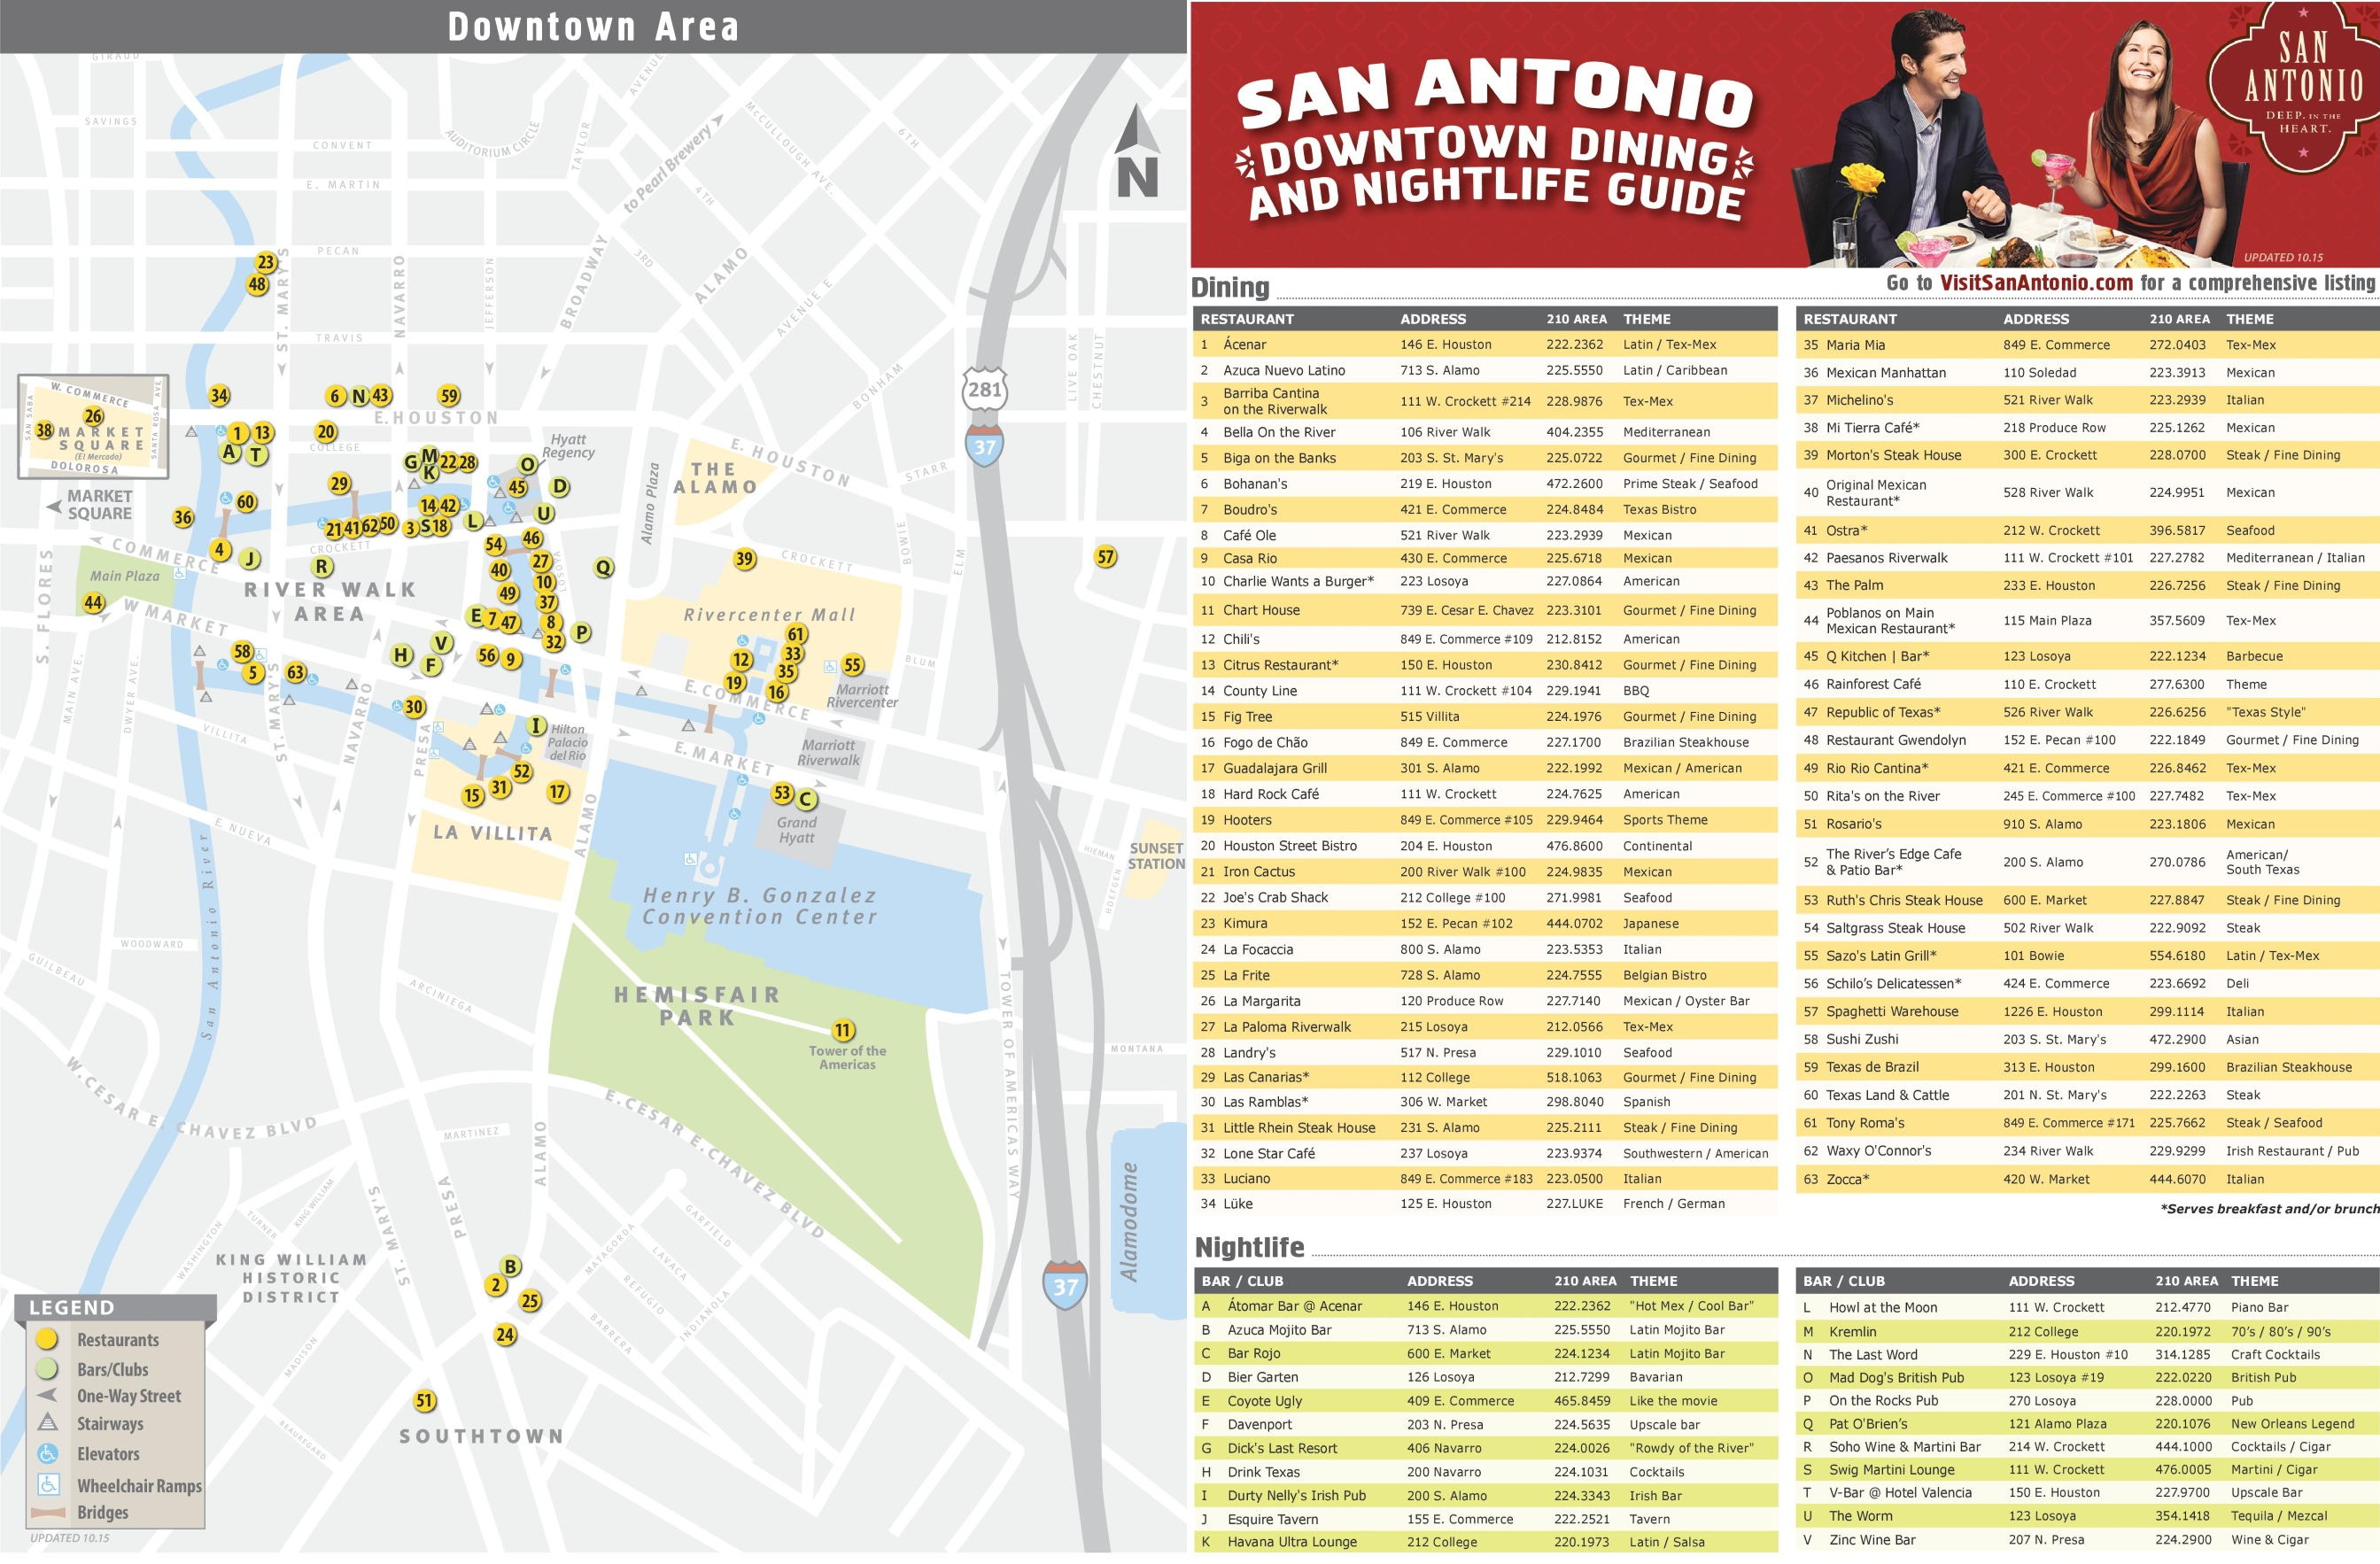 San Antonio restaurants, bars and nightclubs map on sac campus map, rockford college map, wyoming college map, pasadena college map, gulf coast college map, miami college map, city college of san francisco map, grand canyon college map, albany college map, valparaiso college map, oklahoma college map, hudson valley college map, buffalo college map, utah college map, long beach college map, denver college map, new jersey college map, university of houston college map, richmond college map, saint philips college map,